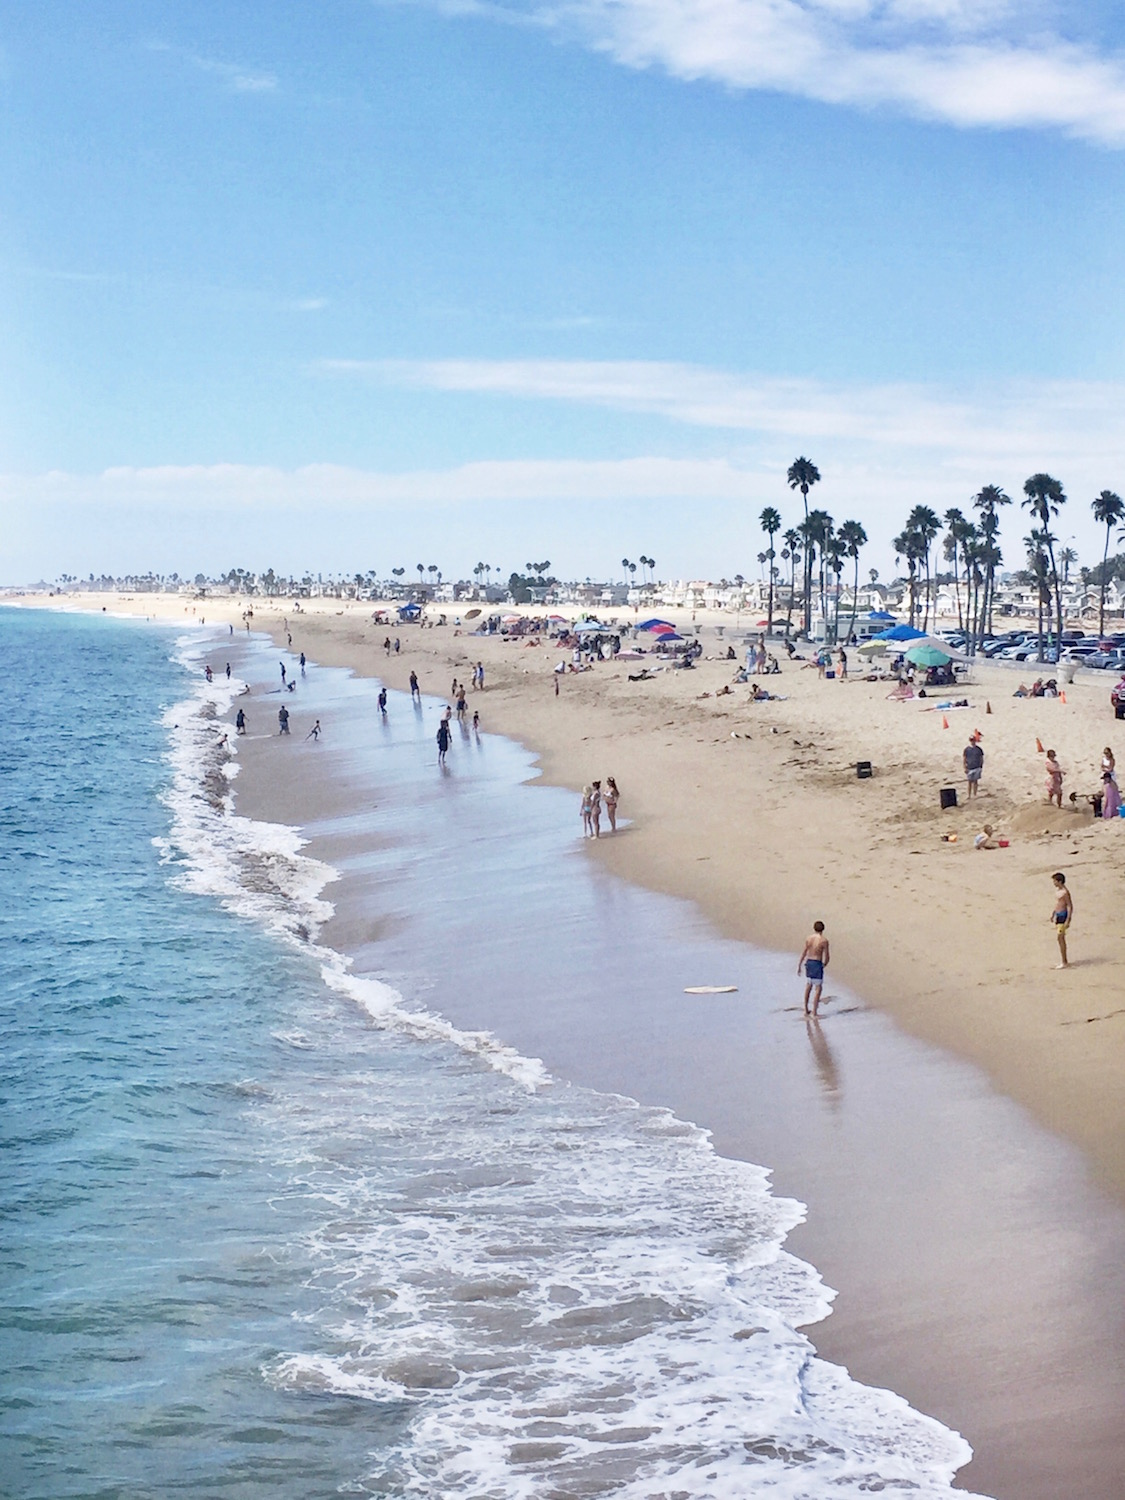 Mark And I Made Our First Trip To Orange County A Few Weekends Ago For Anniversary We Drove Newport Beach Which Is About An Hour Drive From